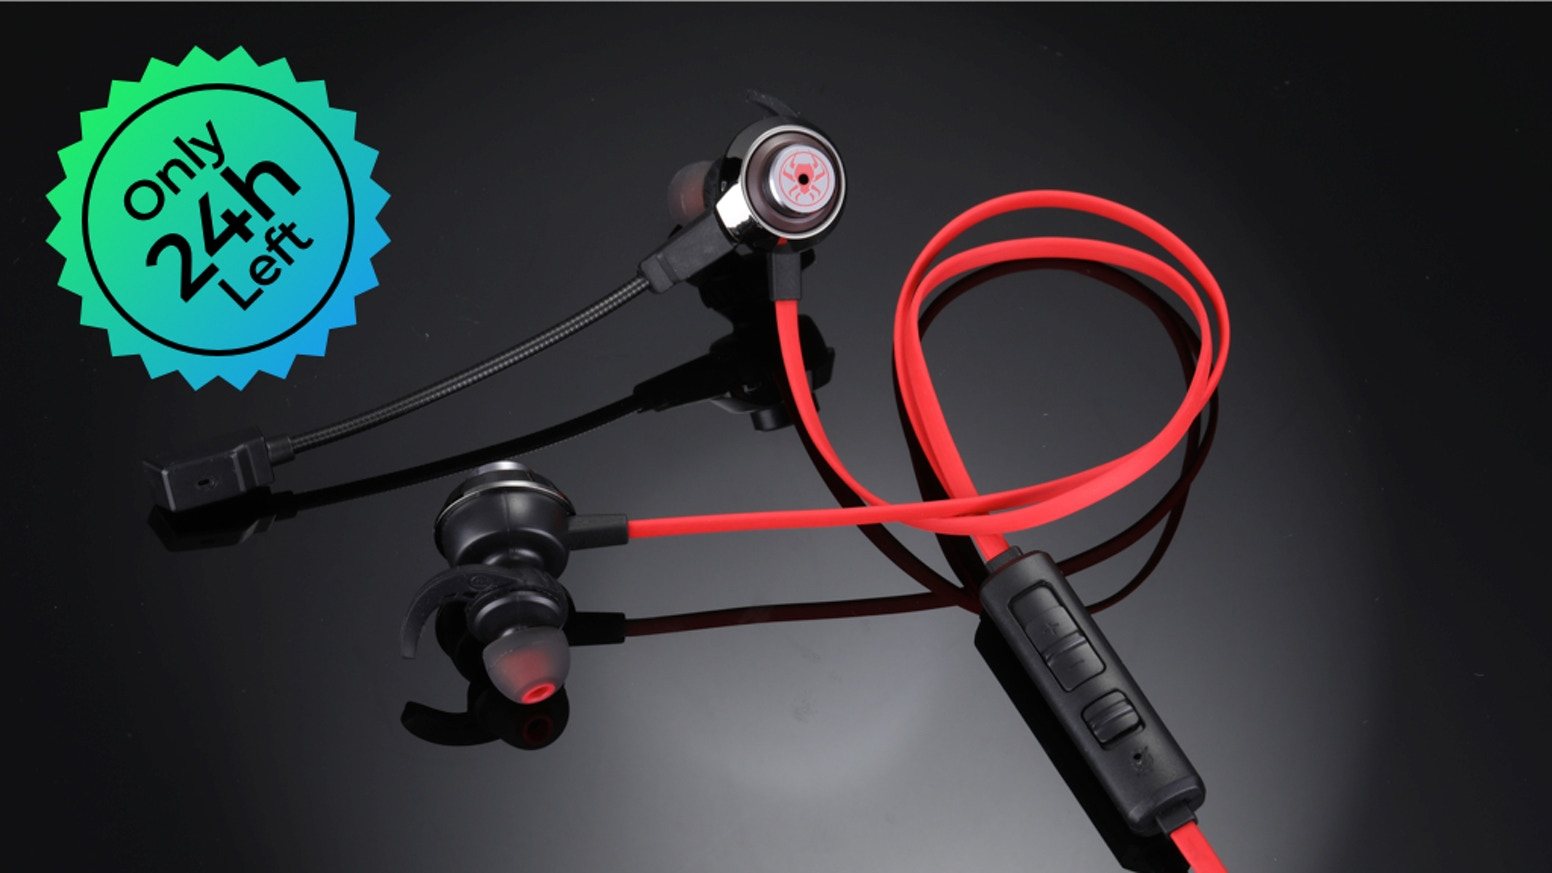 b75d76c2042 Quake:Lightest Virtual 7.1 Gaming Earbuds with Vibration. Built-In Vibration  Unit | Gunshot and Footsteps Enhancement | Virtual 7.1 Channel | 18